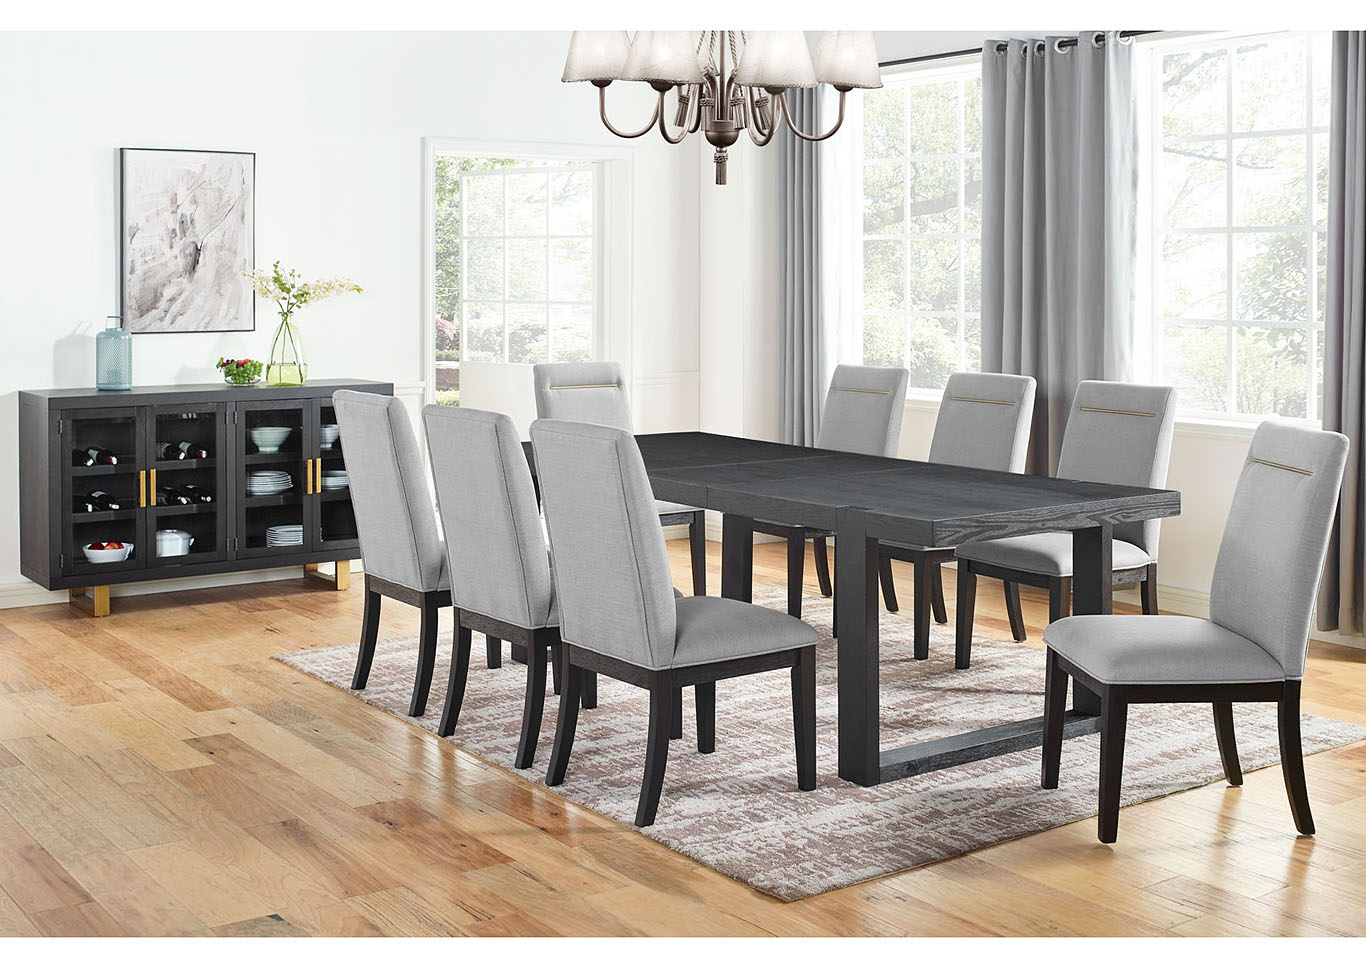 Yves Grey Rectangular Dining Set W 8 White Chairs Ivan Smith